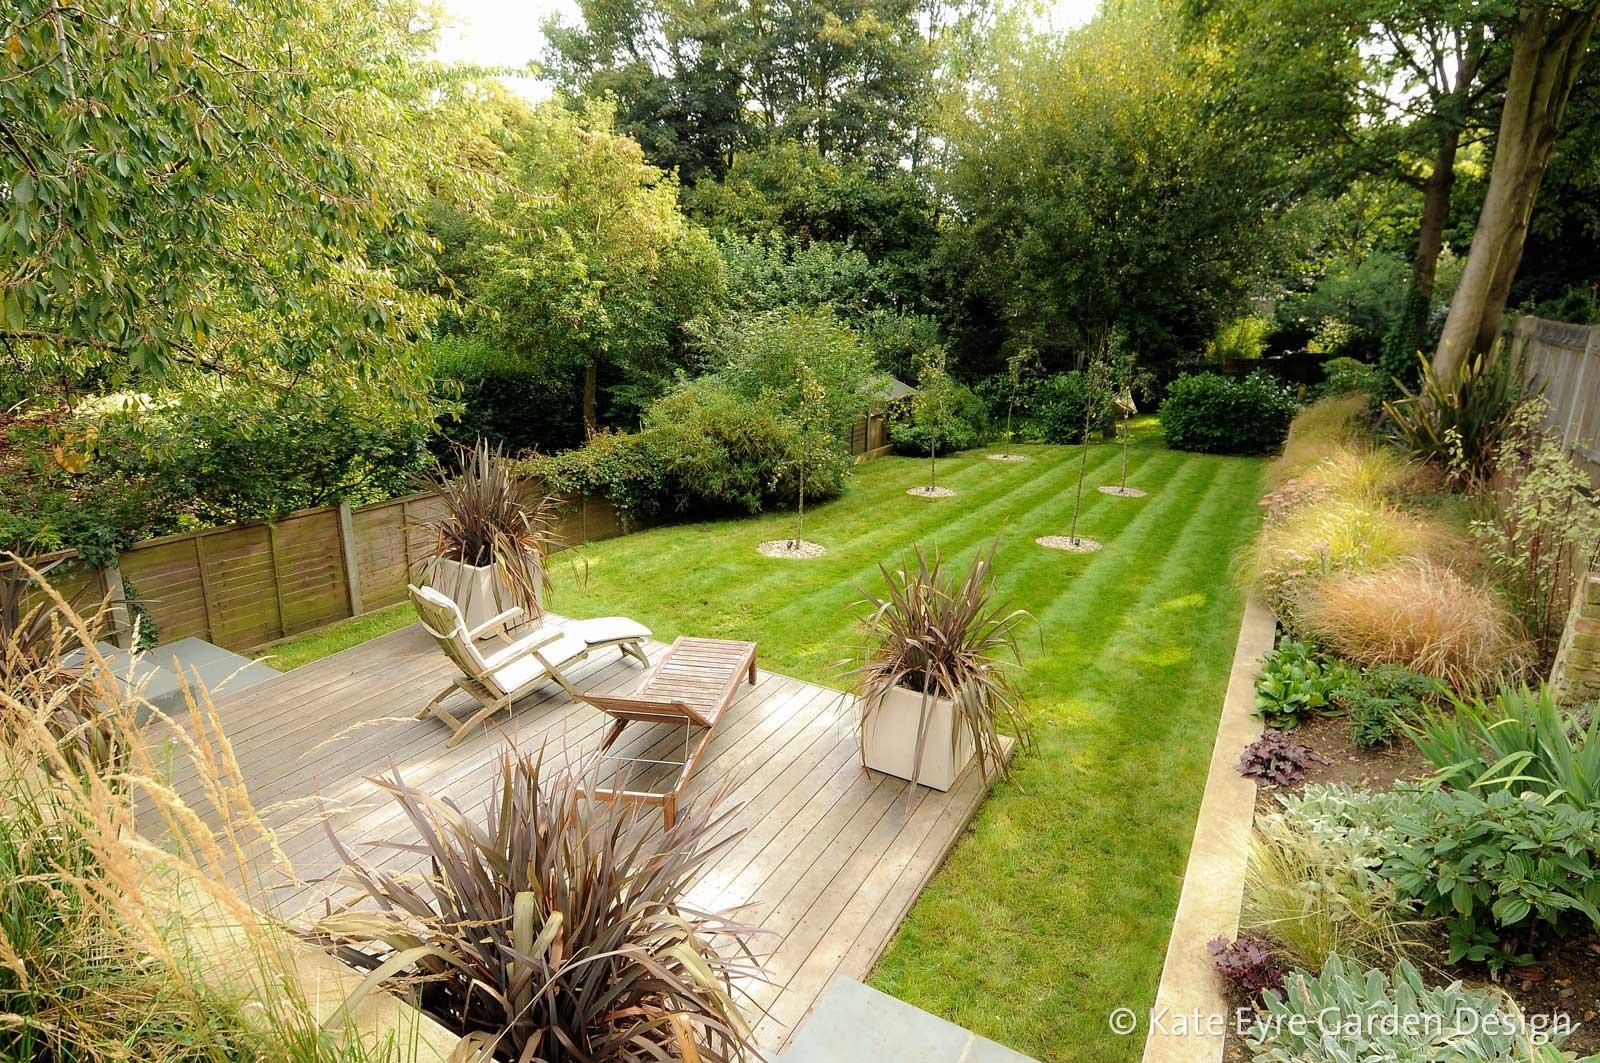 Garden Design In Crystal Palace South East London Garden Design Garden Ideas Diy Garden Garden Proje In 2020 Garden Landscape Design Garden Design Landscape Design